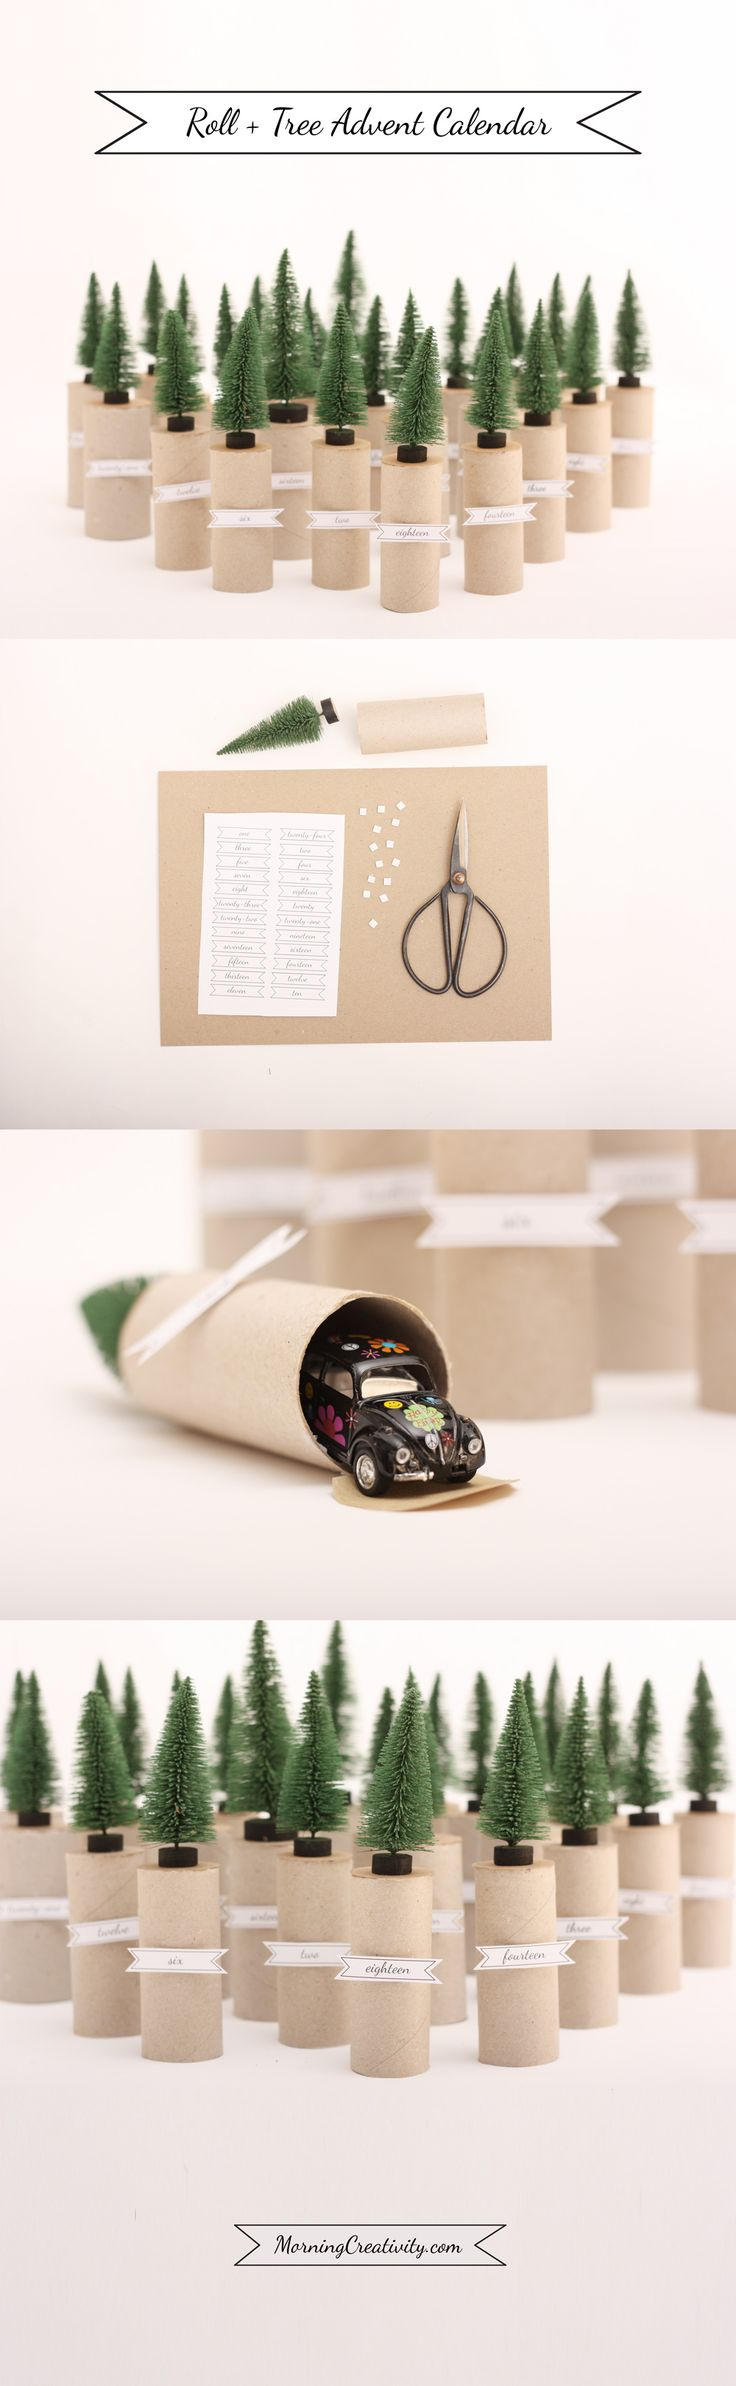 Roll + Tree Advent Calendar made from Toilet Paper rolls and mini trees